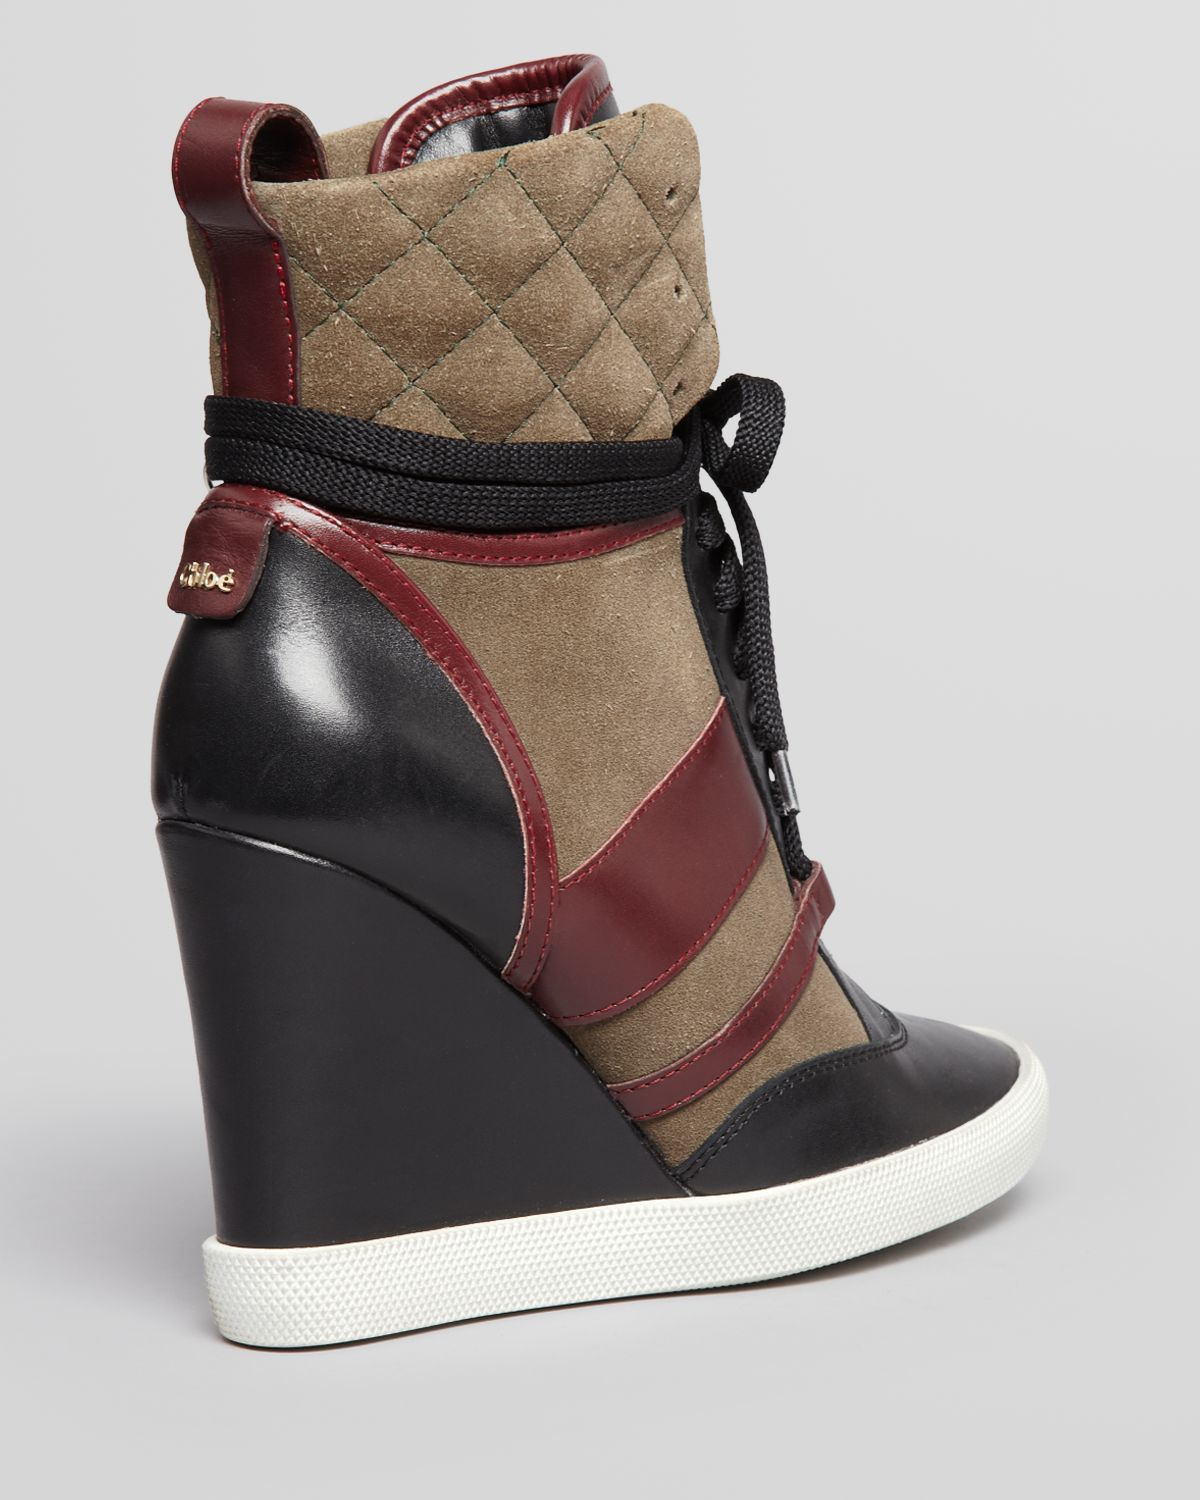 Kasia Top Chloé Up High Black Lace Wedge Sneakers qzMSUVp